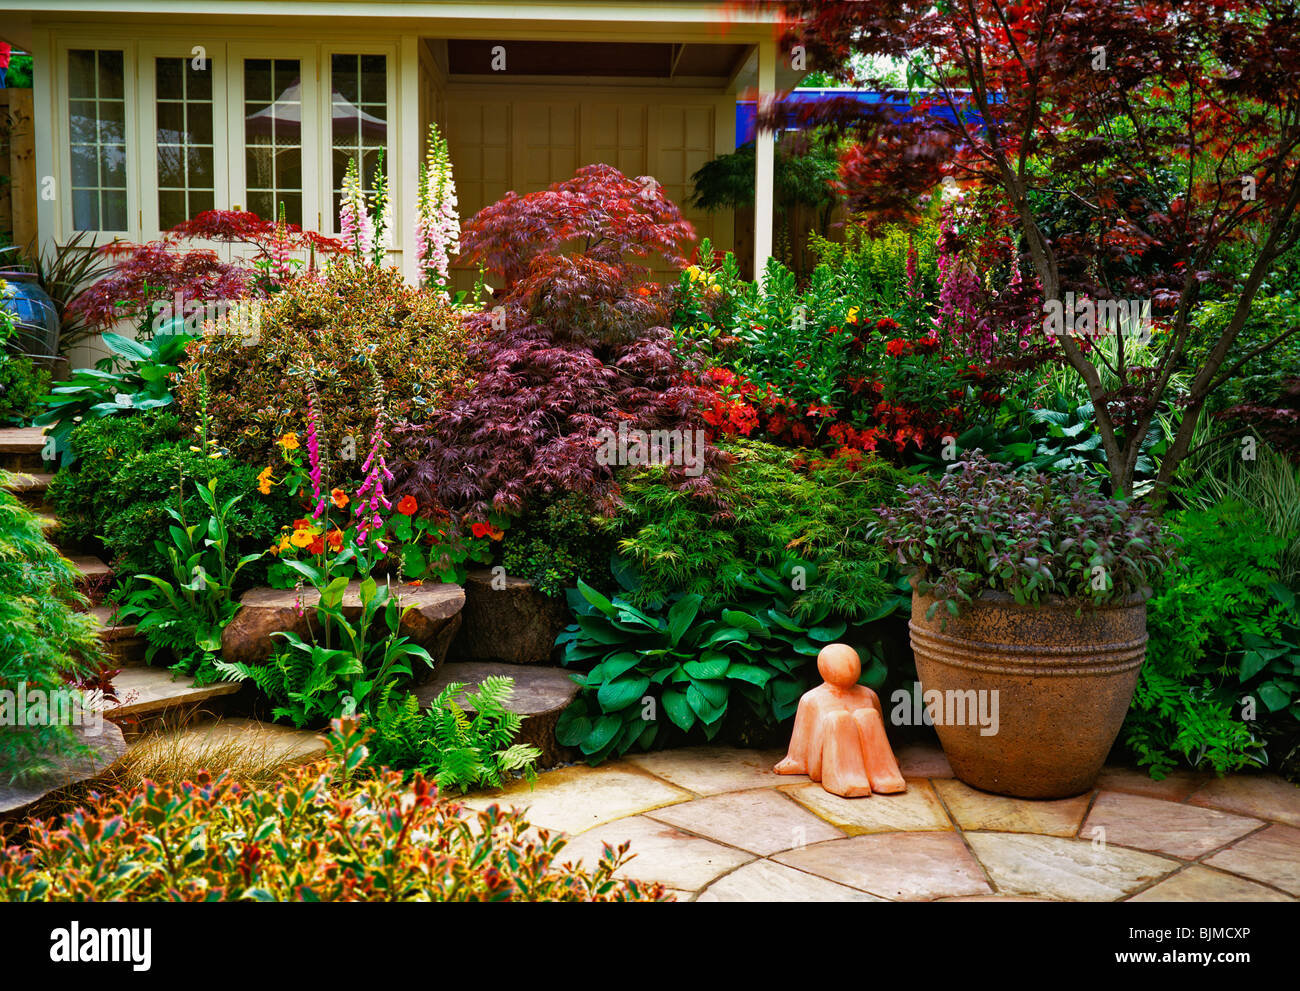 A Back Garden With A Patio And Circular Terrace With Containers And  Colourful Shrubs   Stock